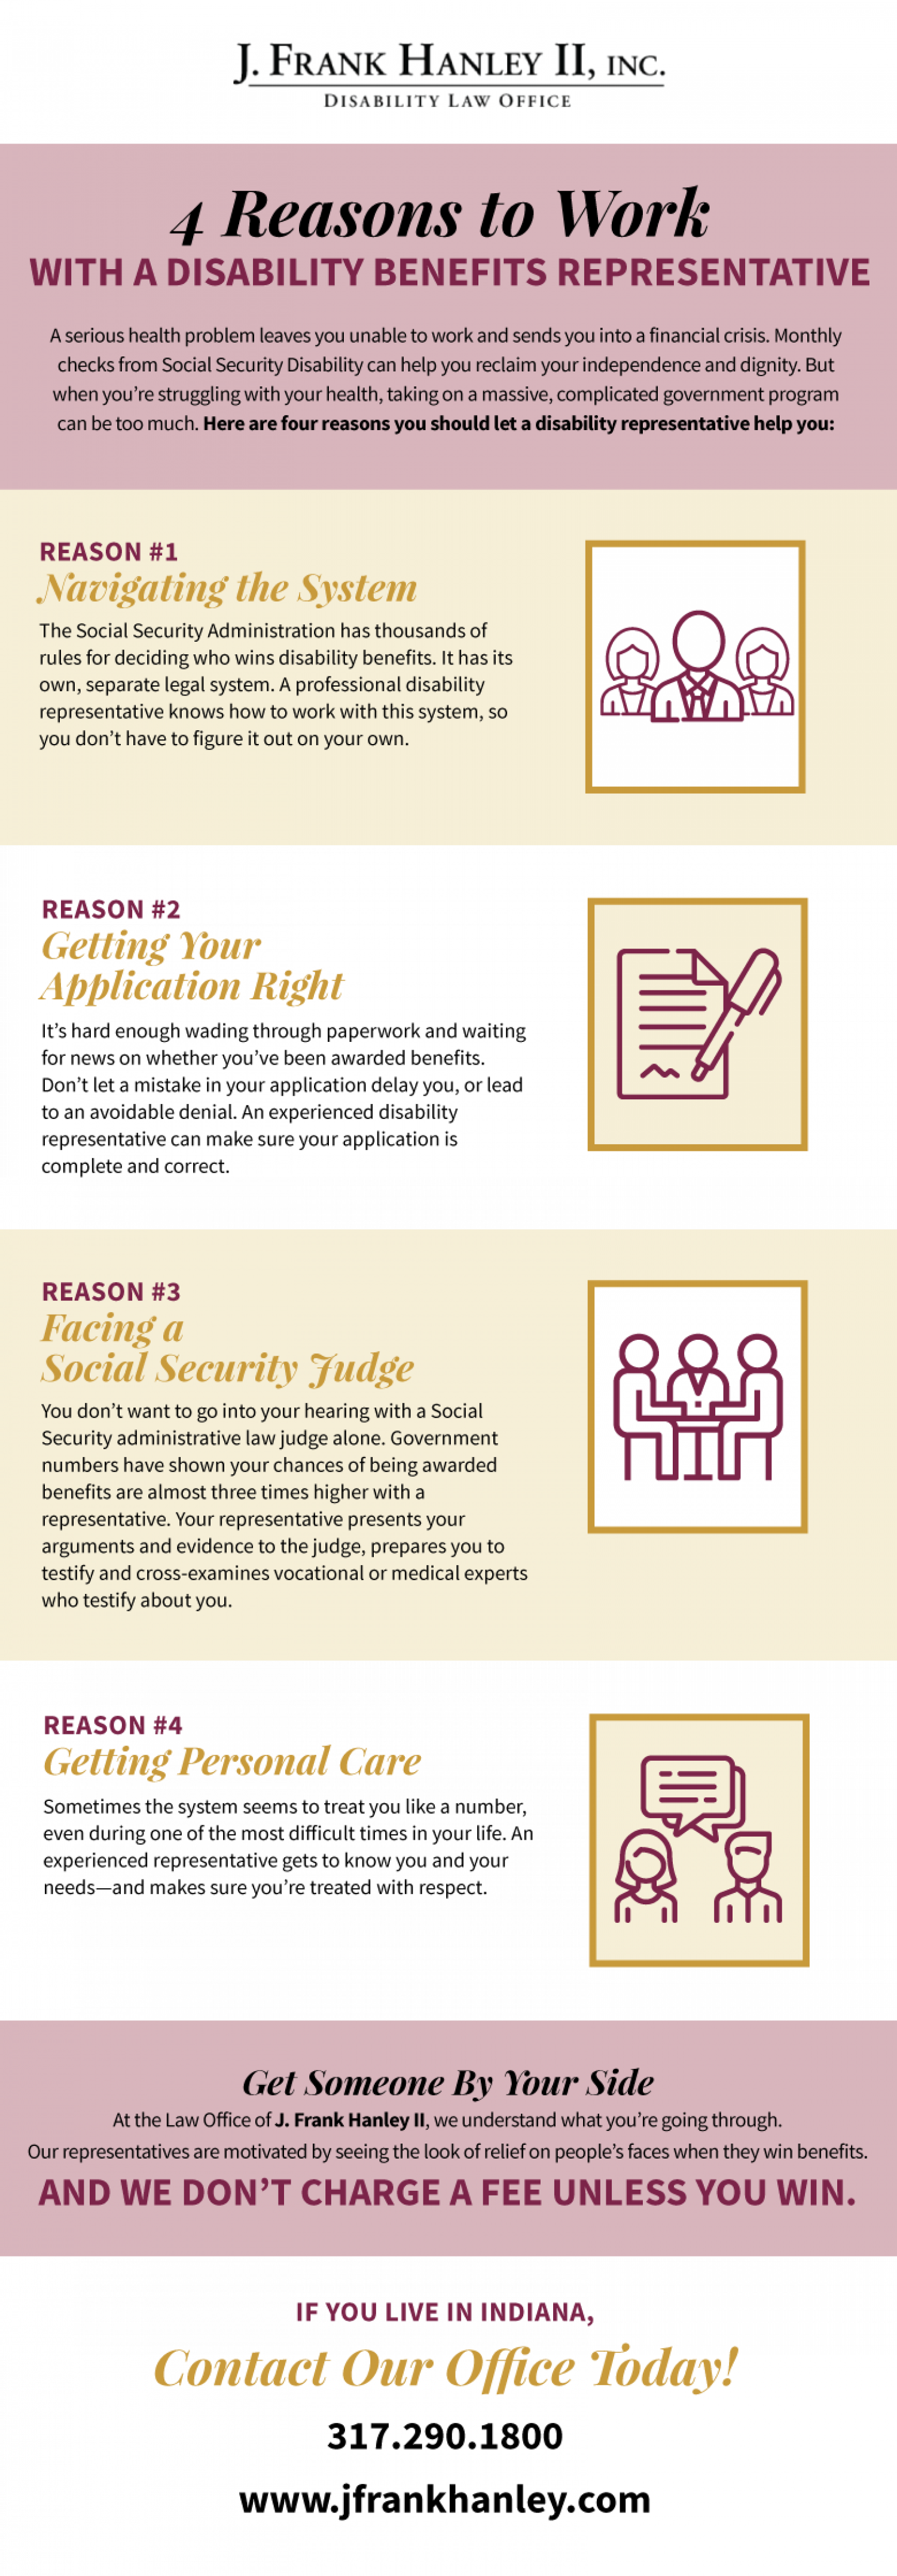 4 Reasons to Work with a Disability Benefits Representative Infographic